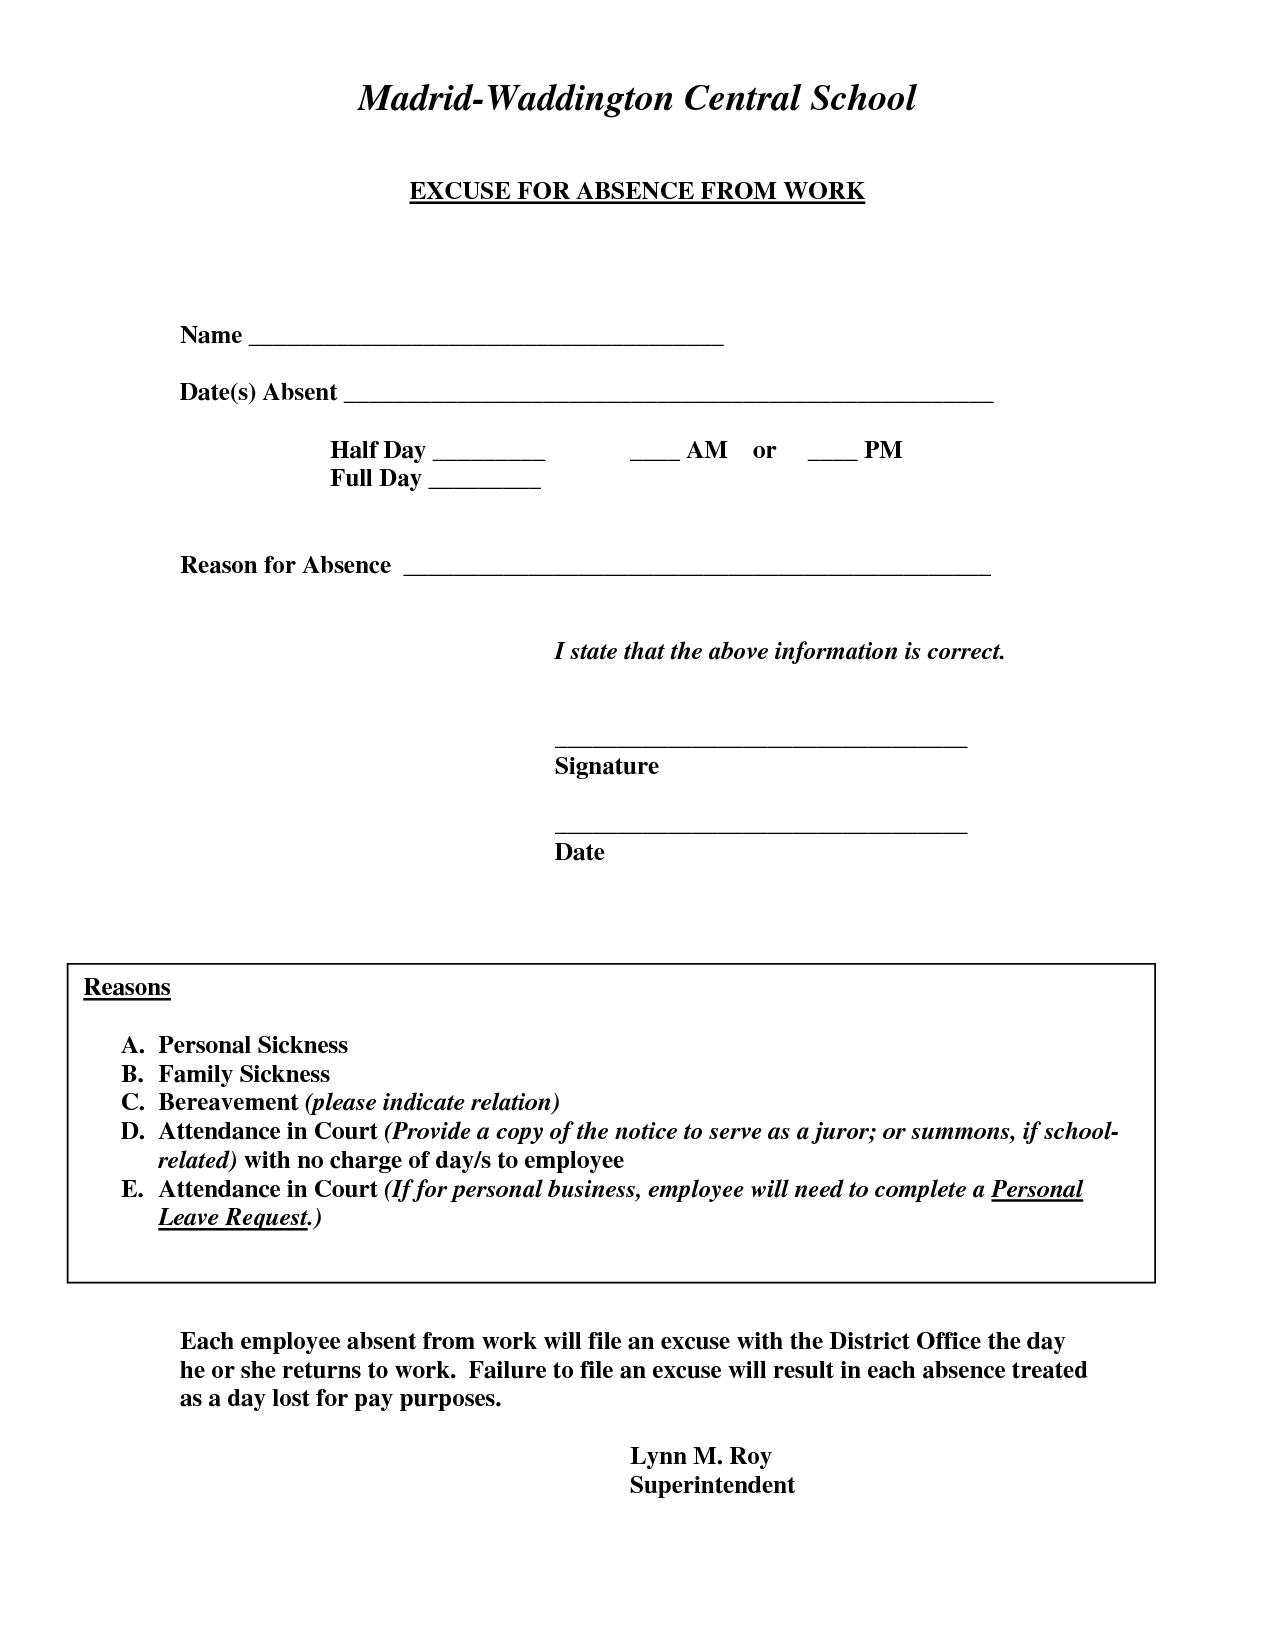 Doctors Excuse For Work Template | Excuse For Absence From Work - Free Printable Doctor Excuse Slips